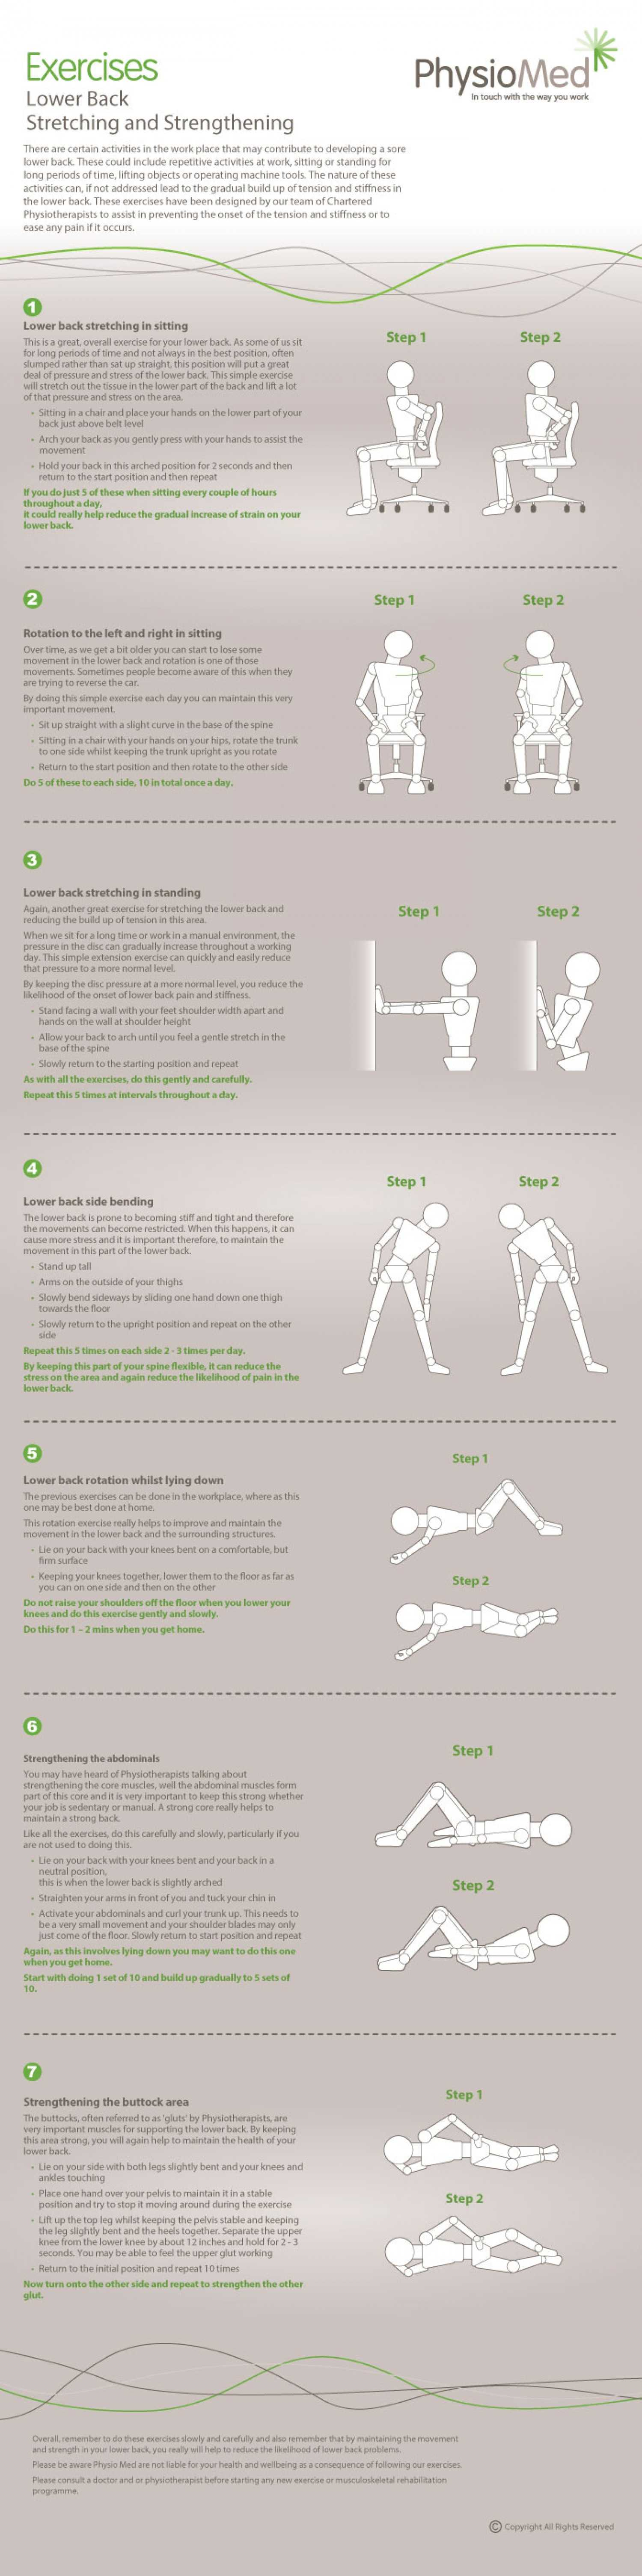 Lower Back Stretching And Strengthening